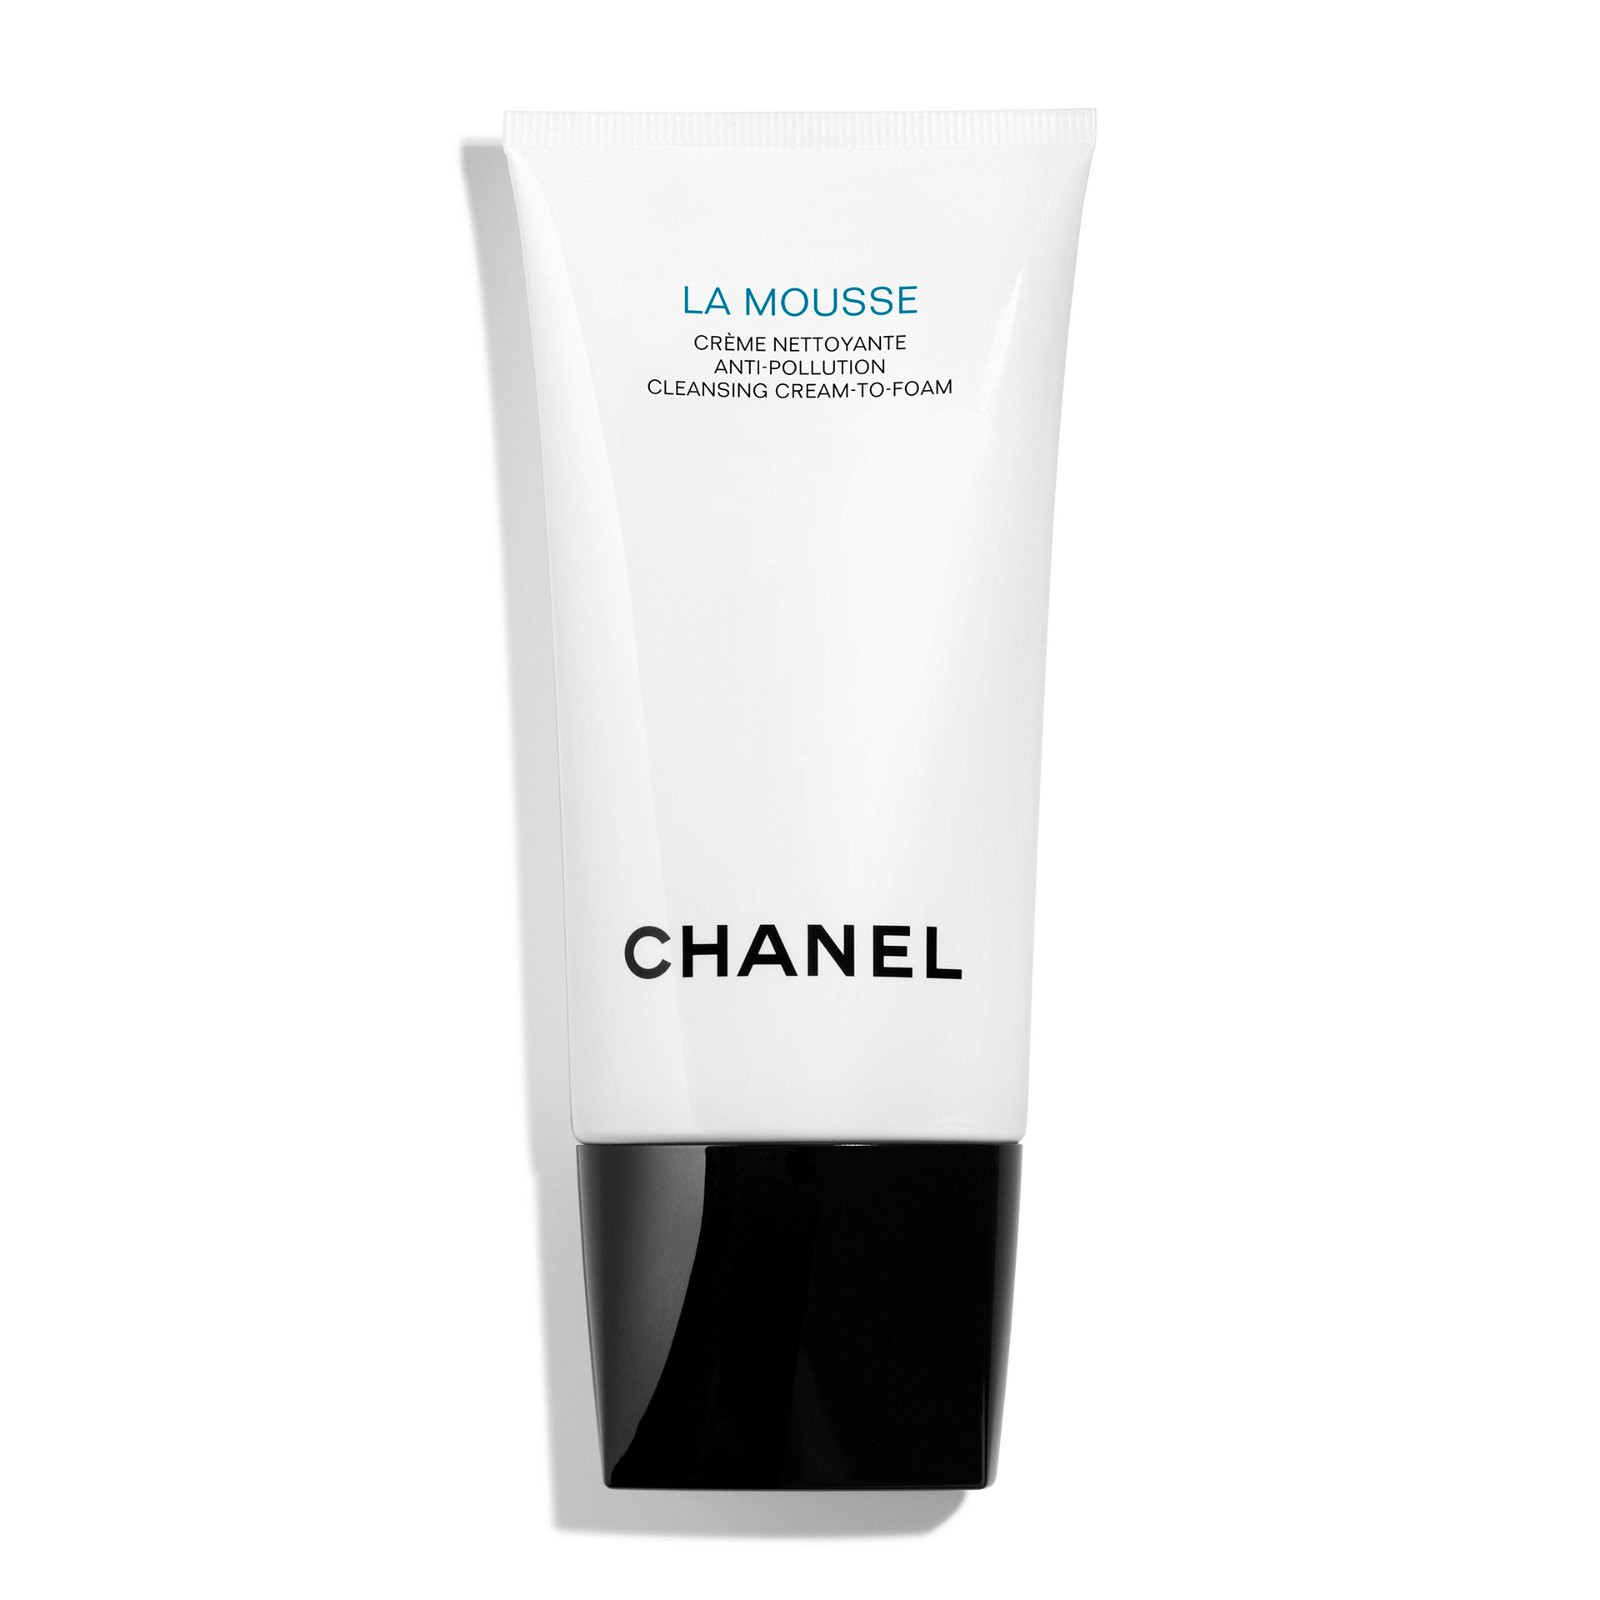 la mousse anti-pollution cleansing cream-to-foam